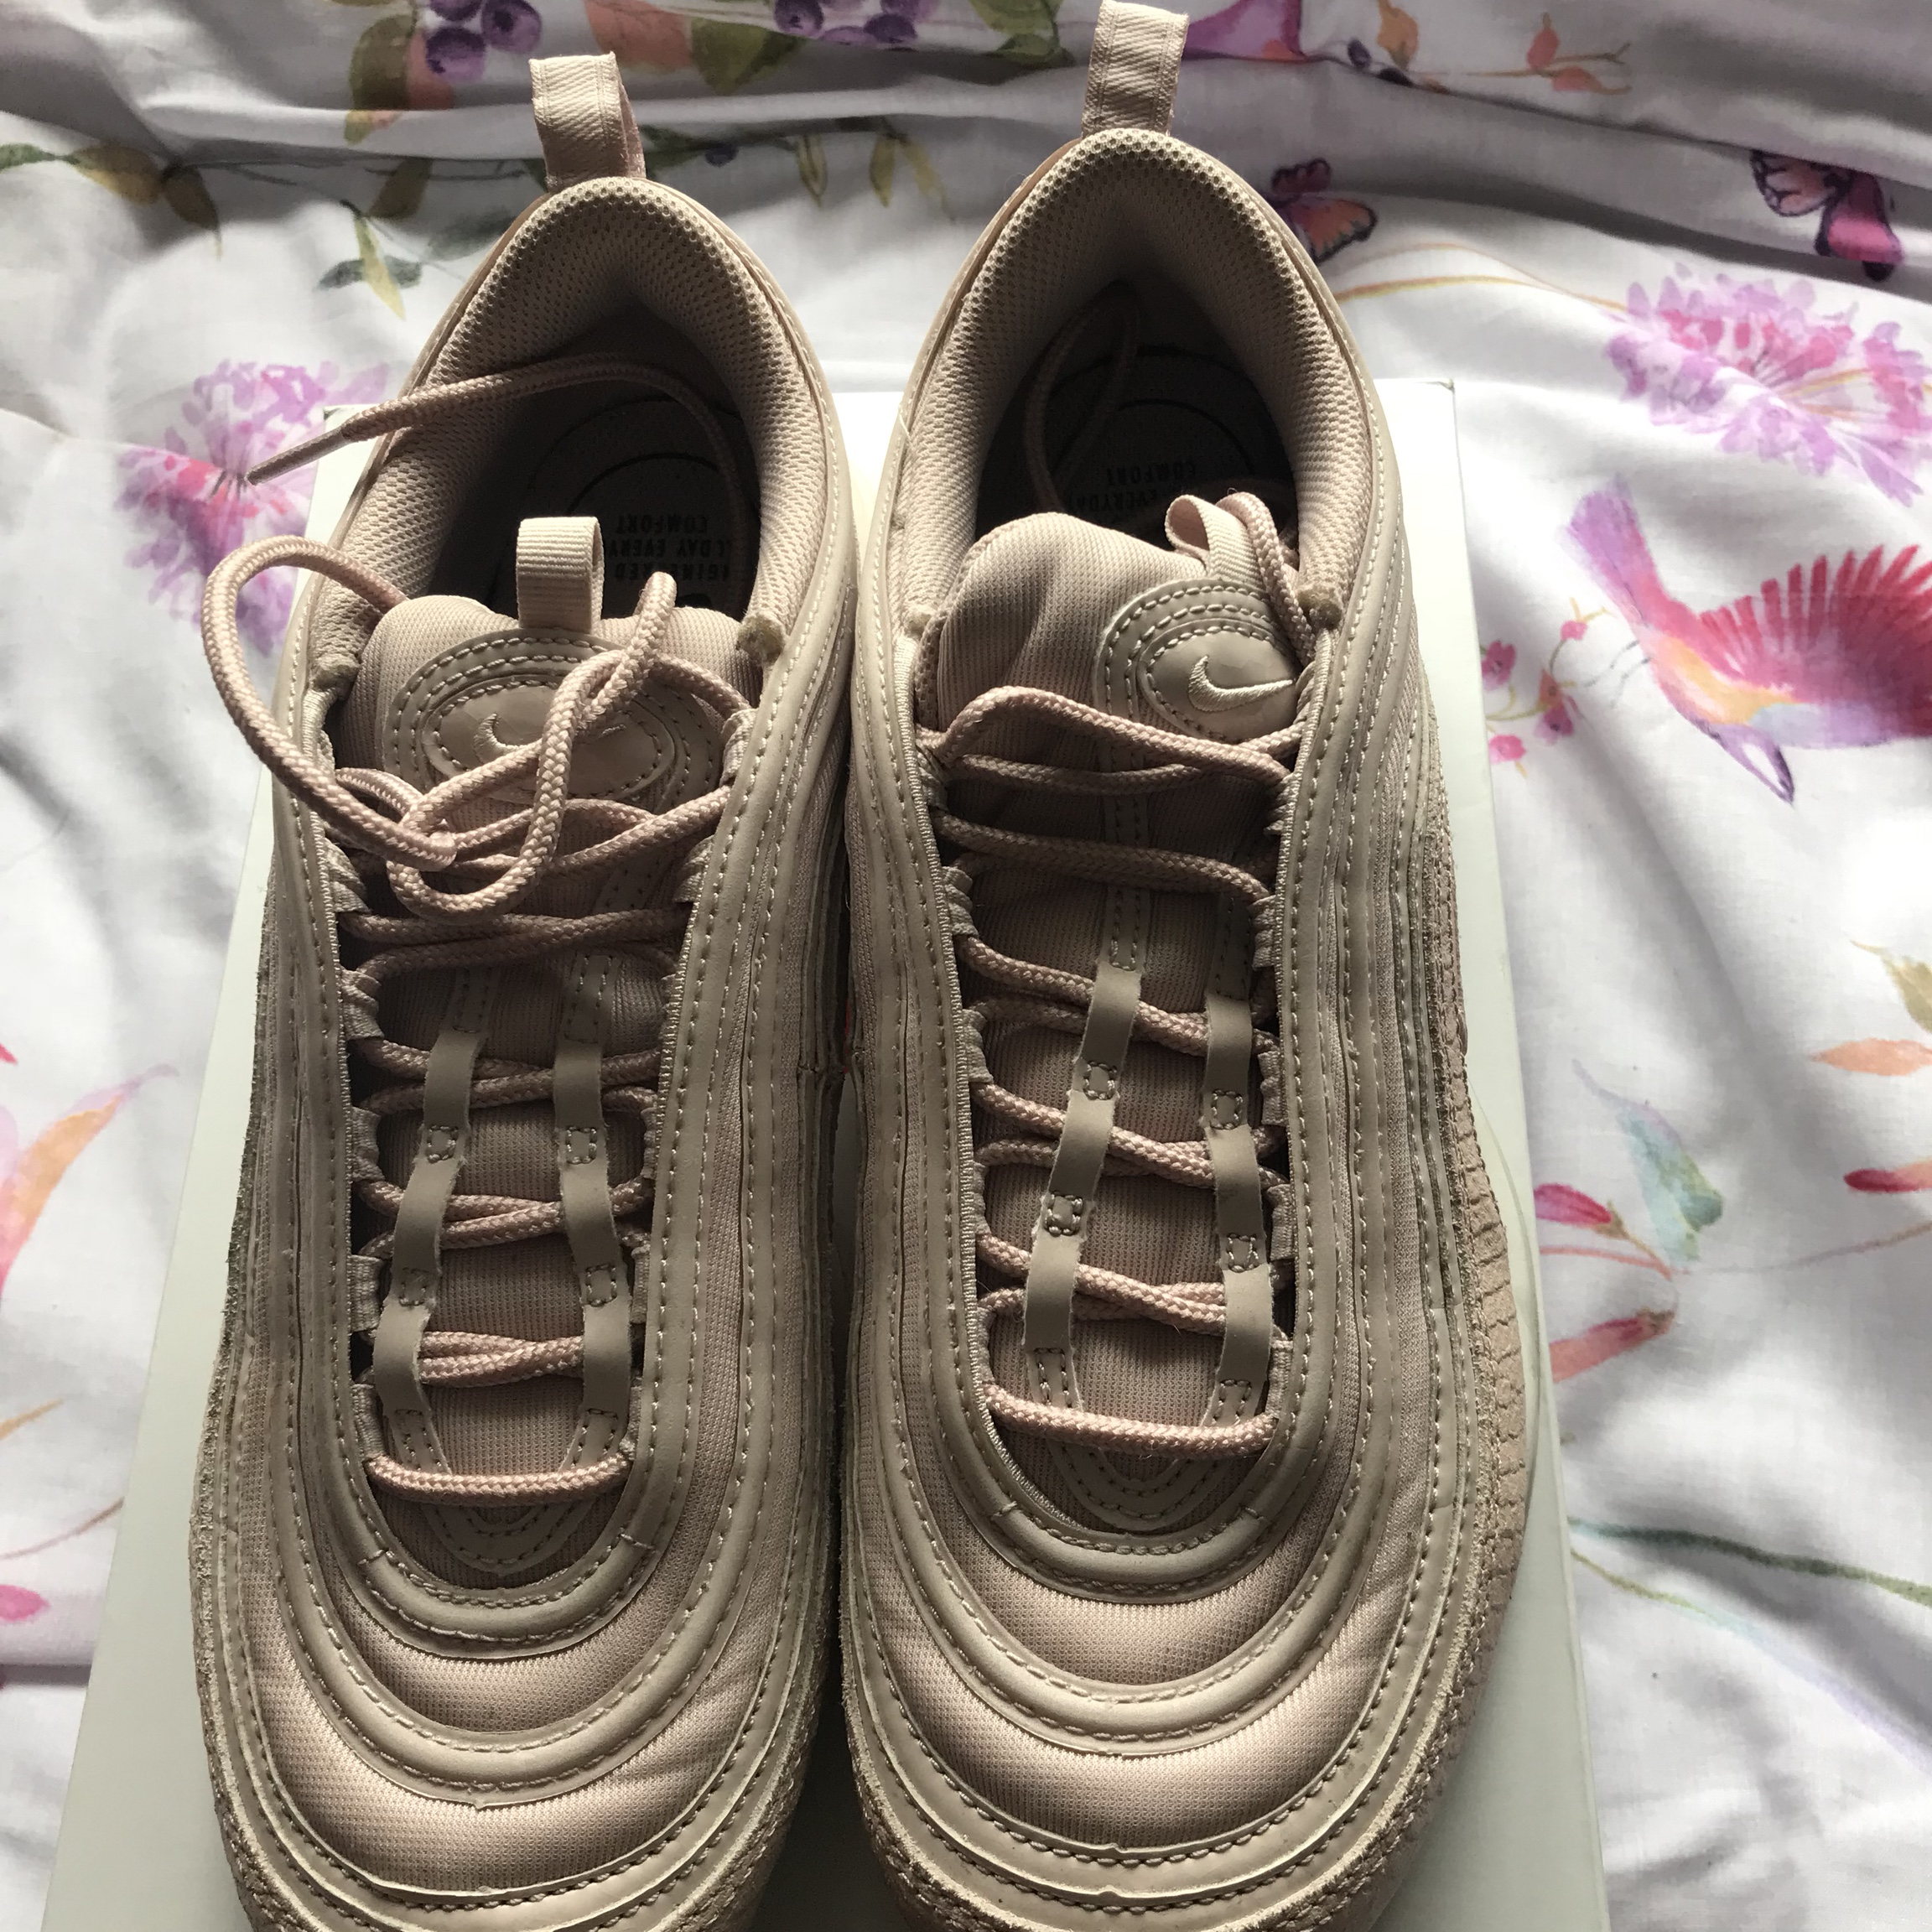 Ladies Nike air max 97 size 8 true to size. Worn a Depop